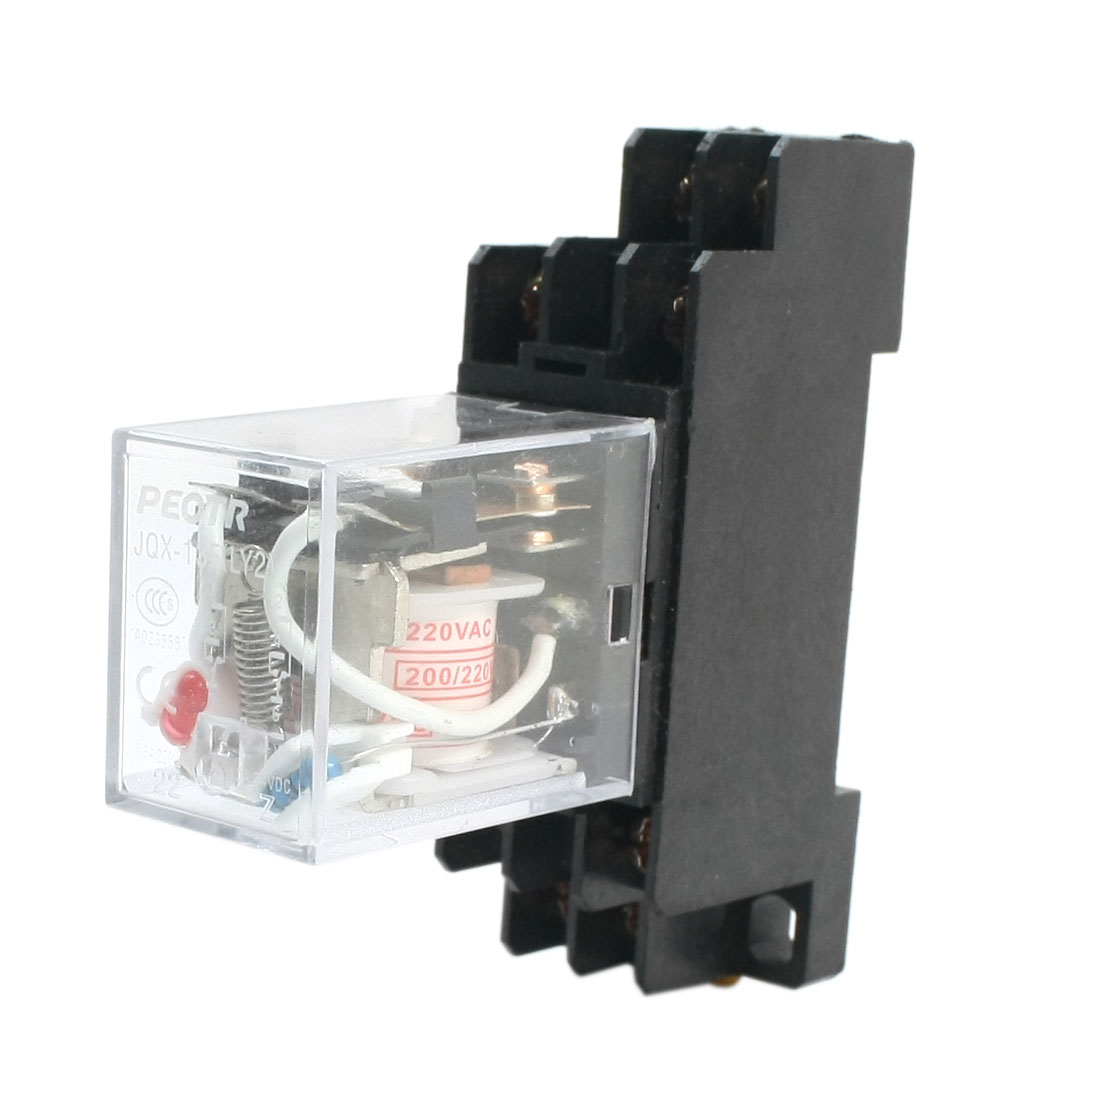 JQX-13F LY2 AC 200/220V Coil Voltage DPDT 8 Pins 5A Red LED Light Power Relay + PTF08A 35mm Mounting Rail Relay Socket Base